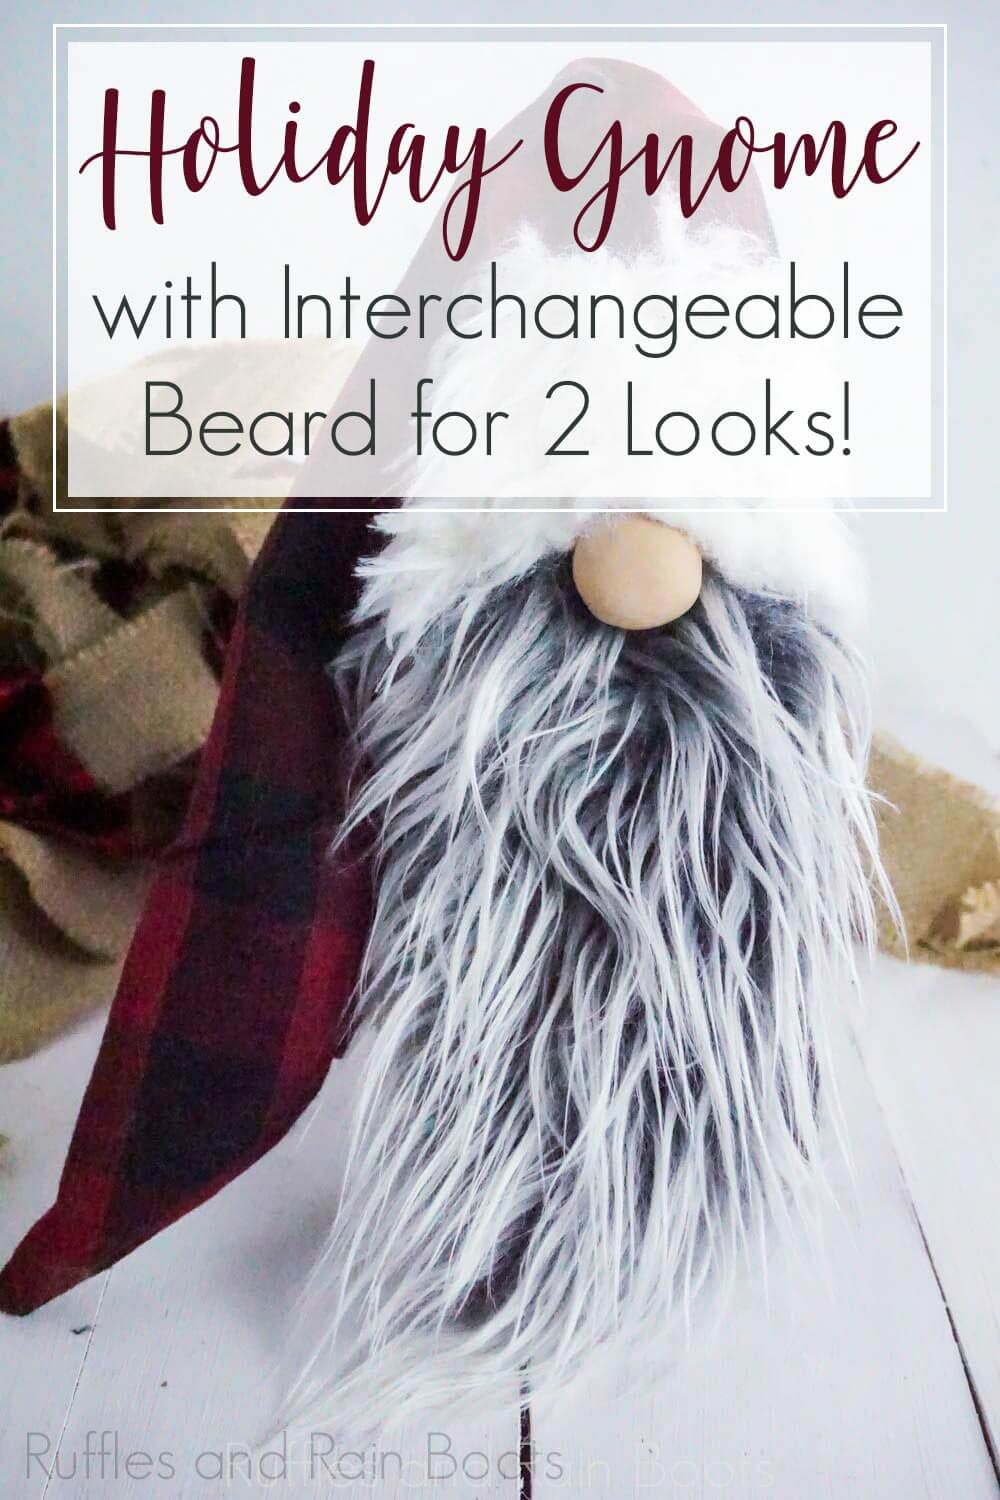 Lumberjack Gnome for the Holidays on a white wood background with text which reads holiday gnome with interchangeable beard for 2 looks